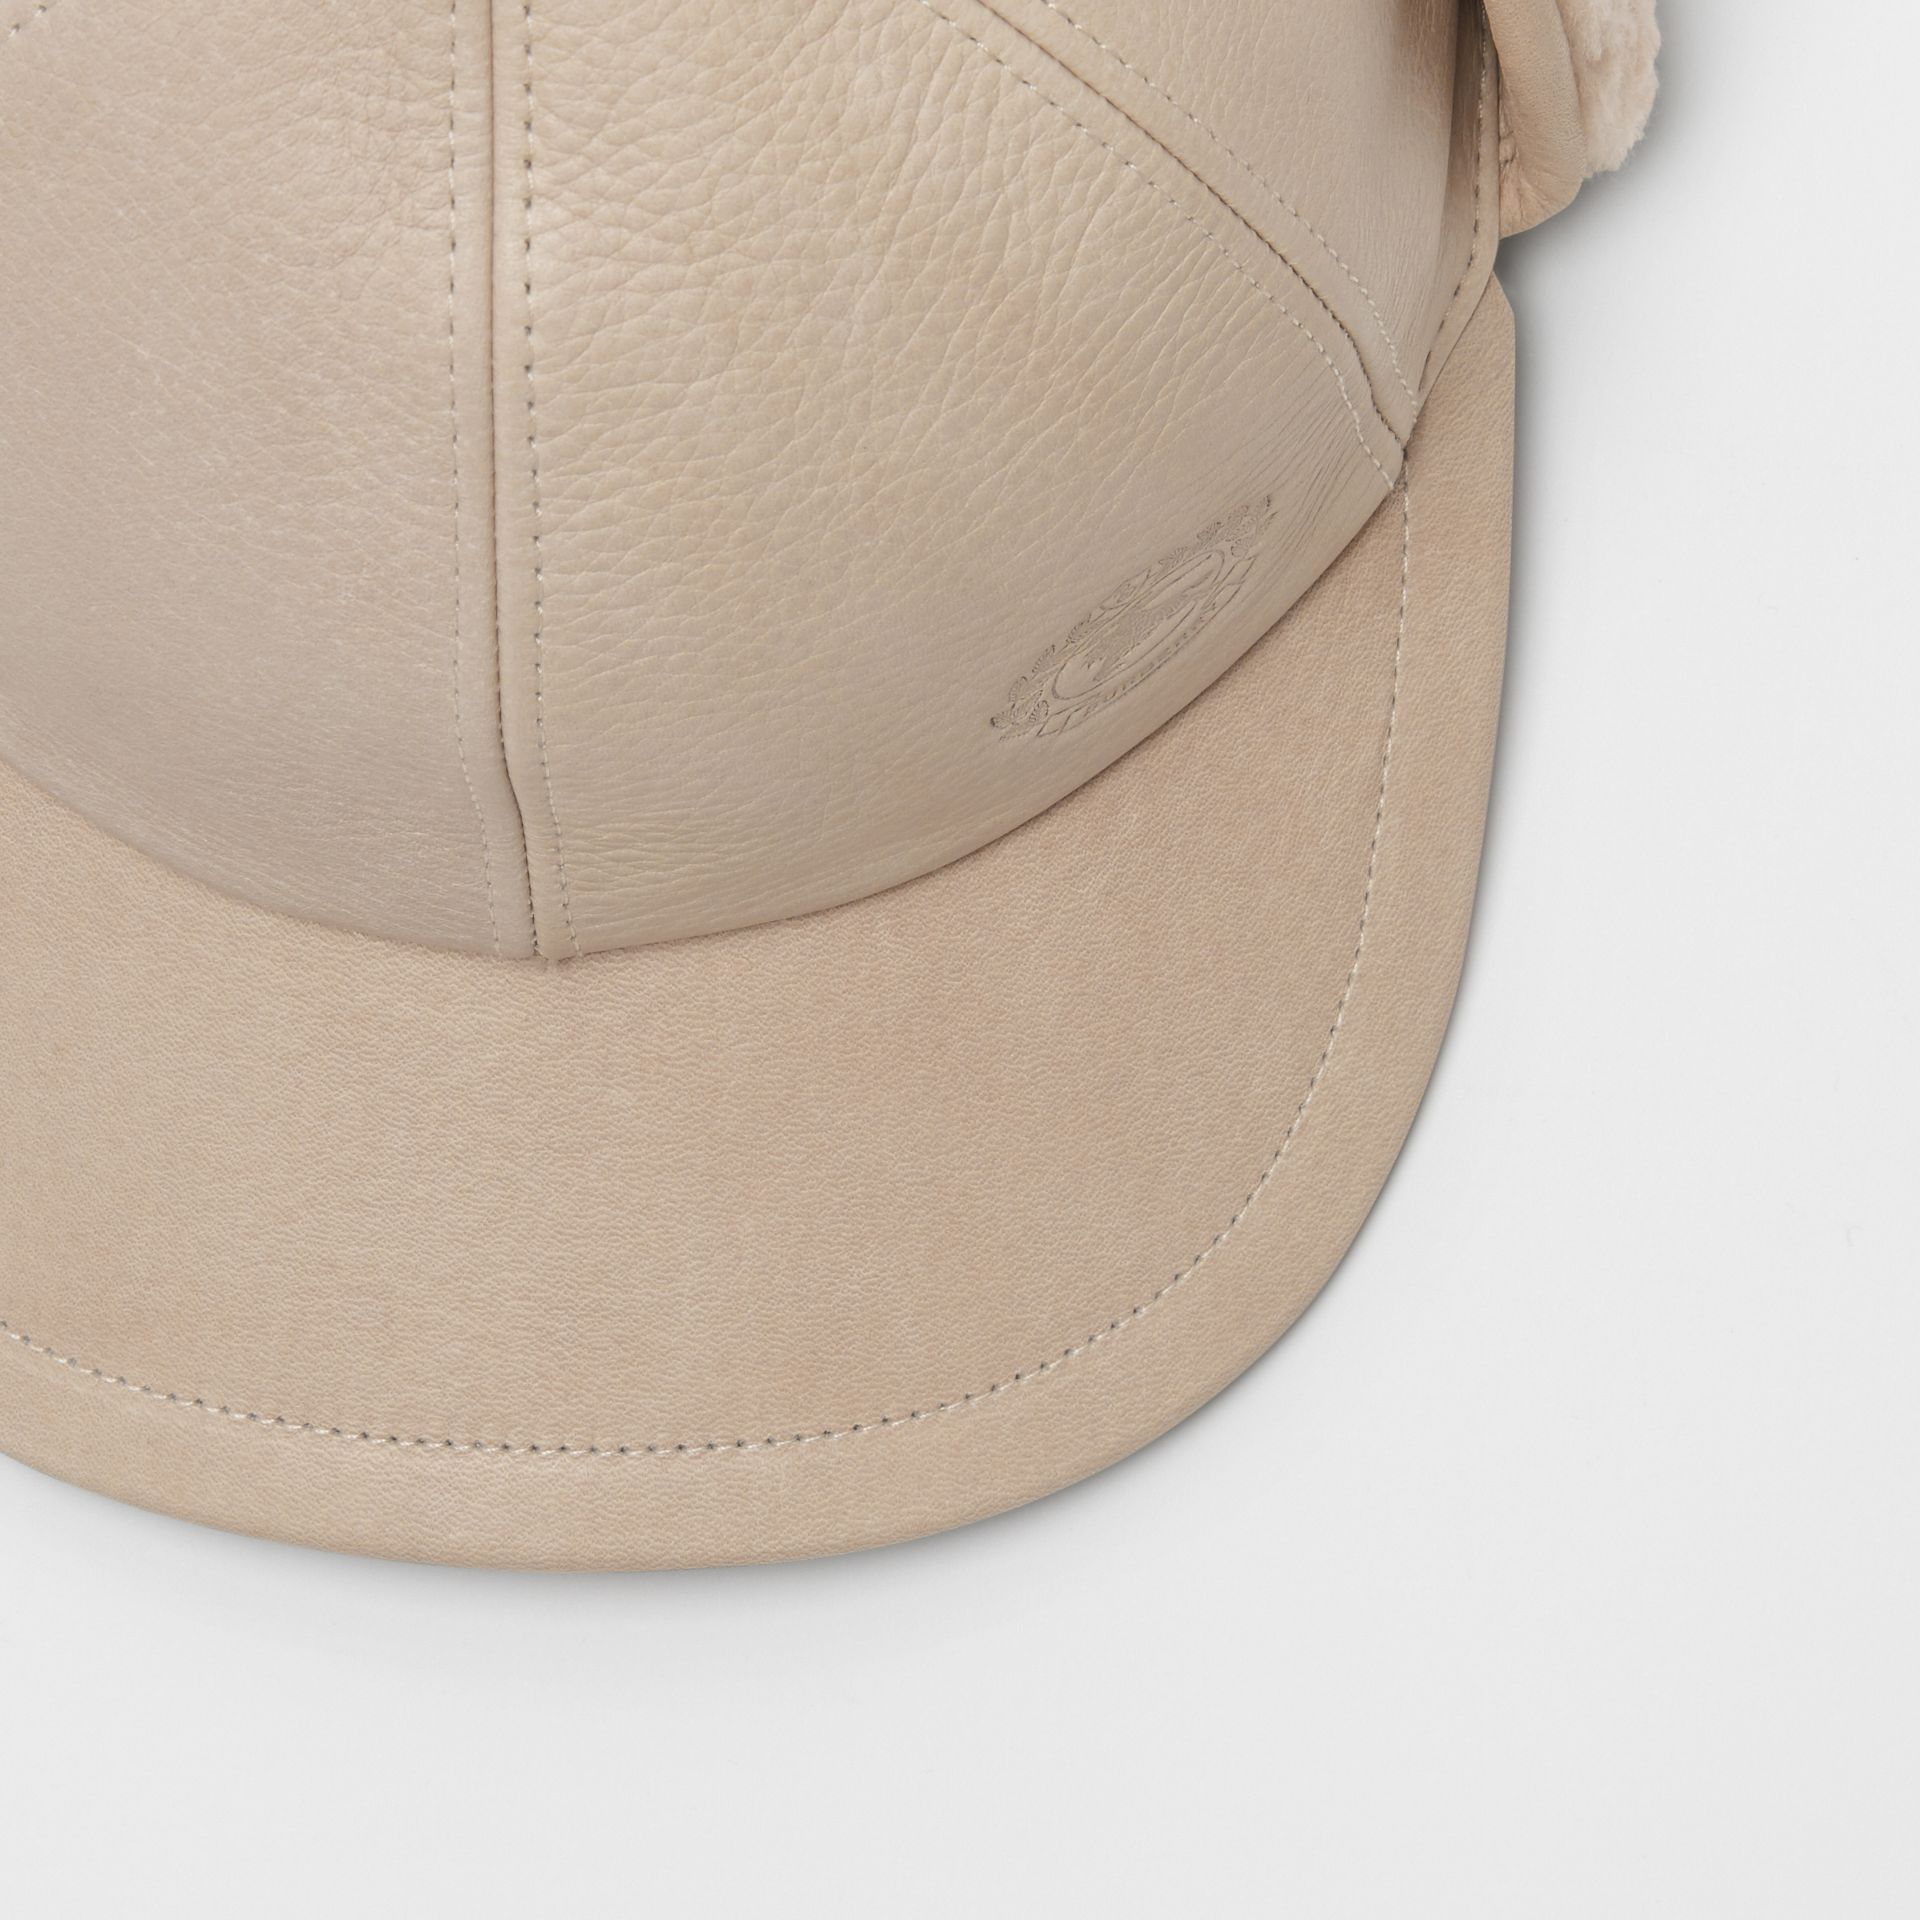 Leather and Shearling Cap in Limestone | Burberry - gallery image 1